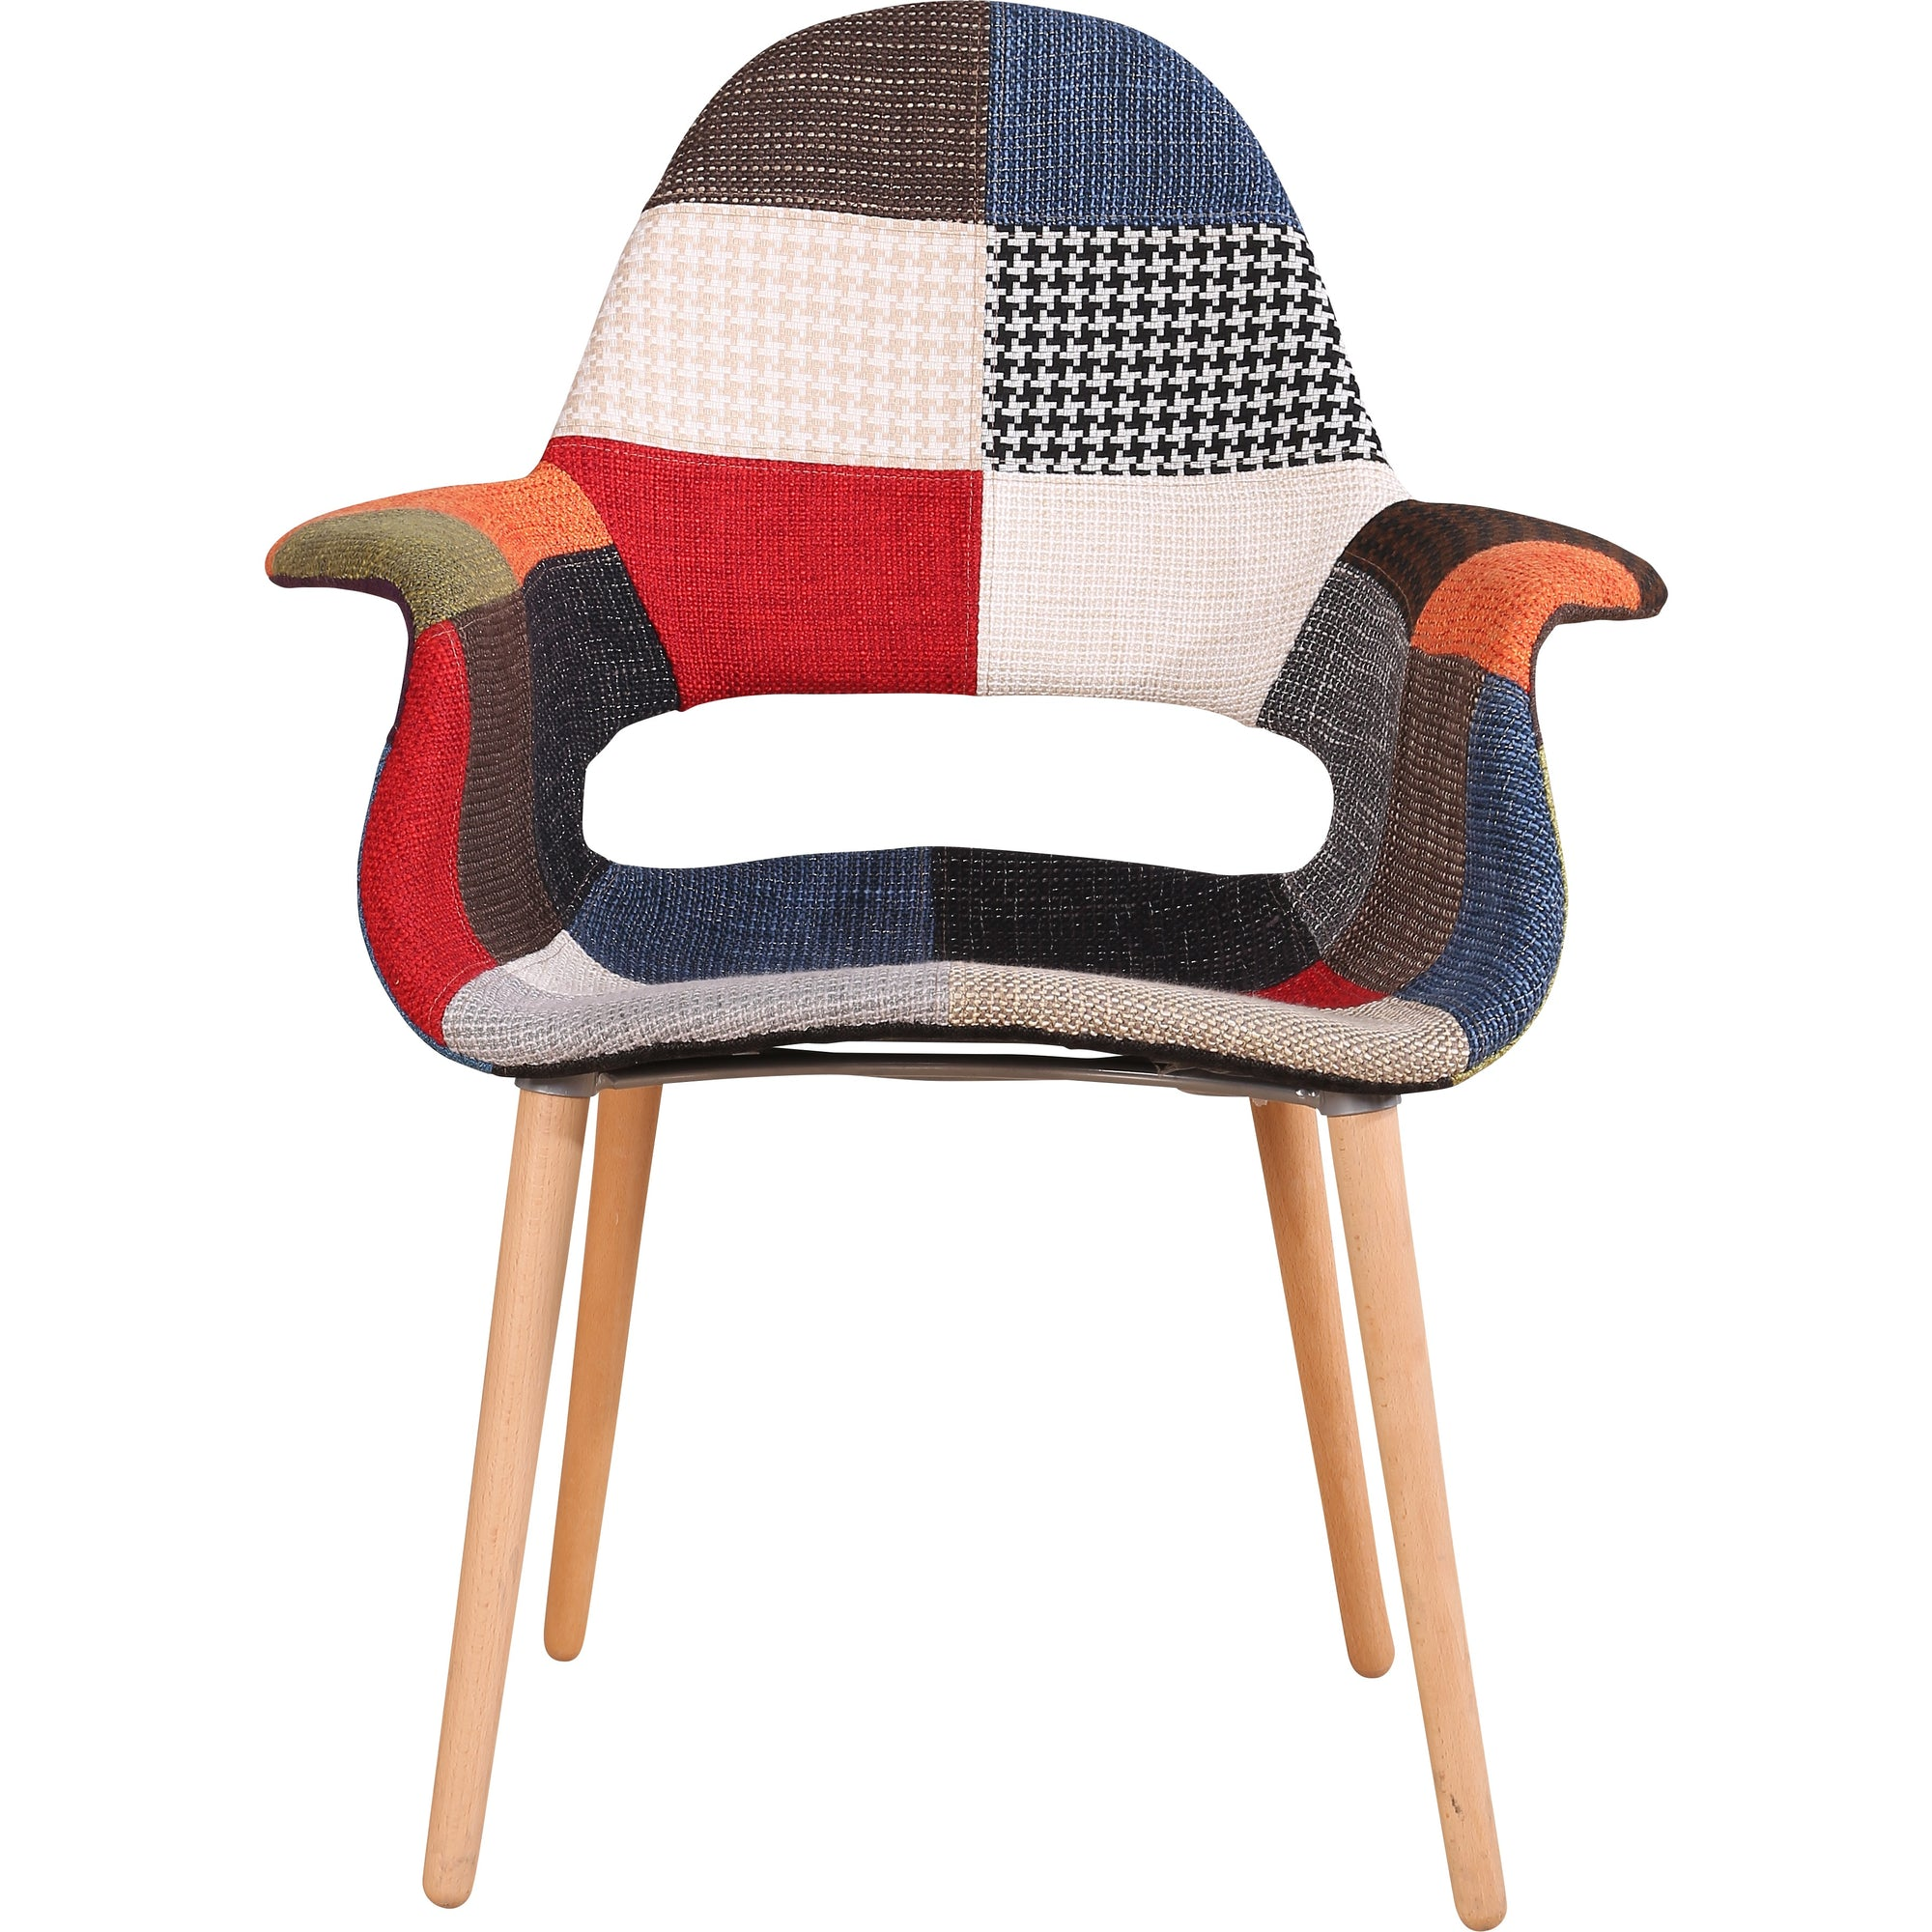 Emma Lounge Open Back Chair Patch Red Multi - Fervor + Hue